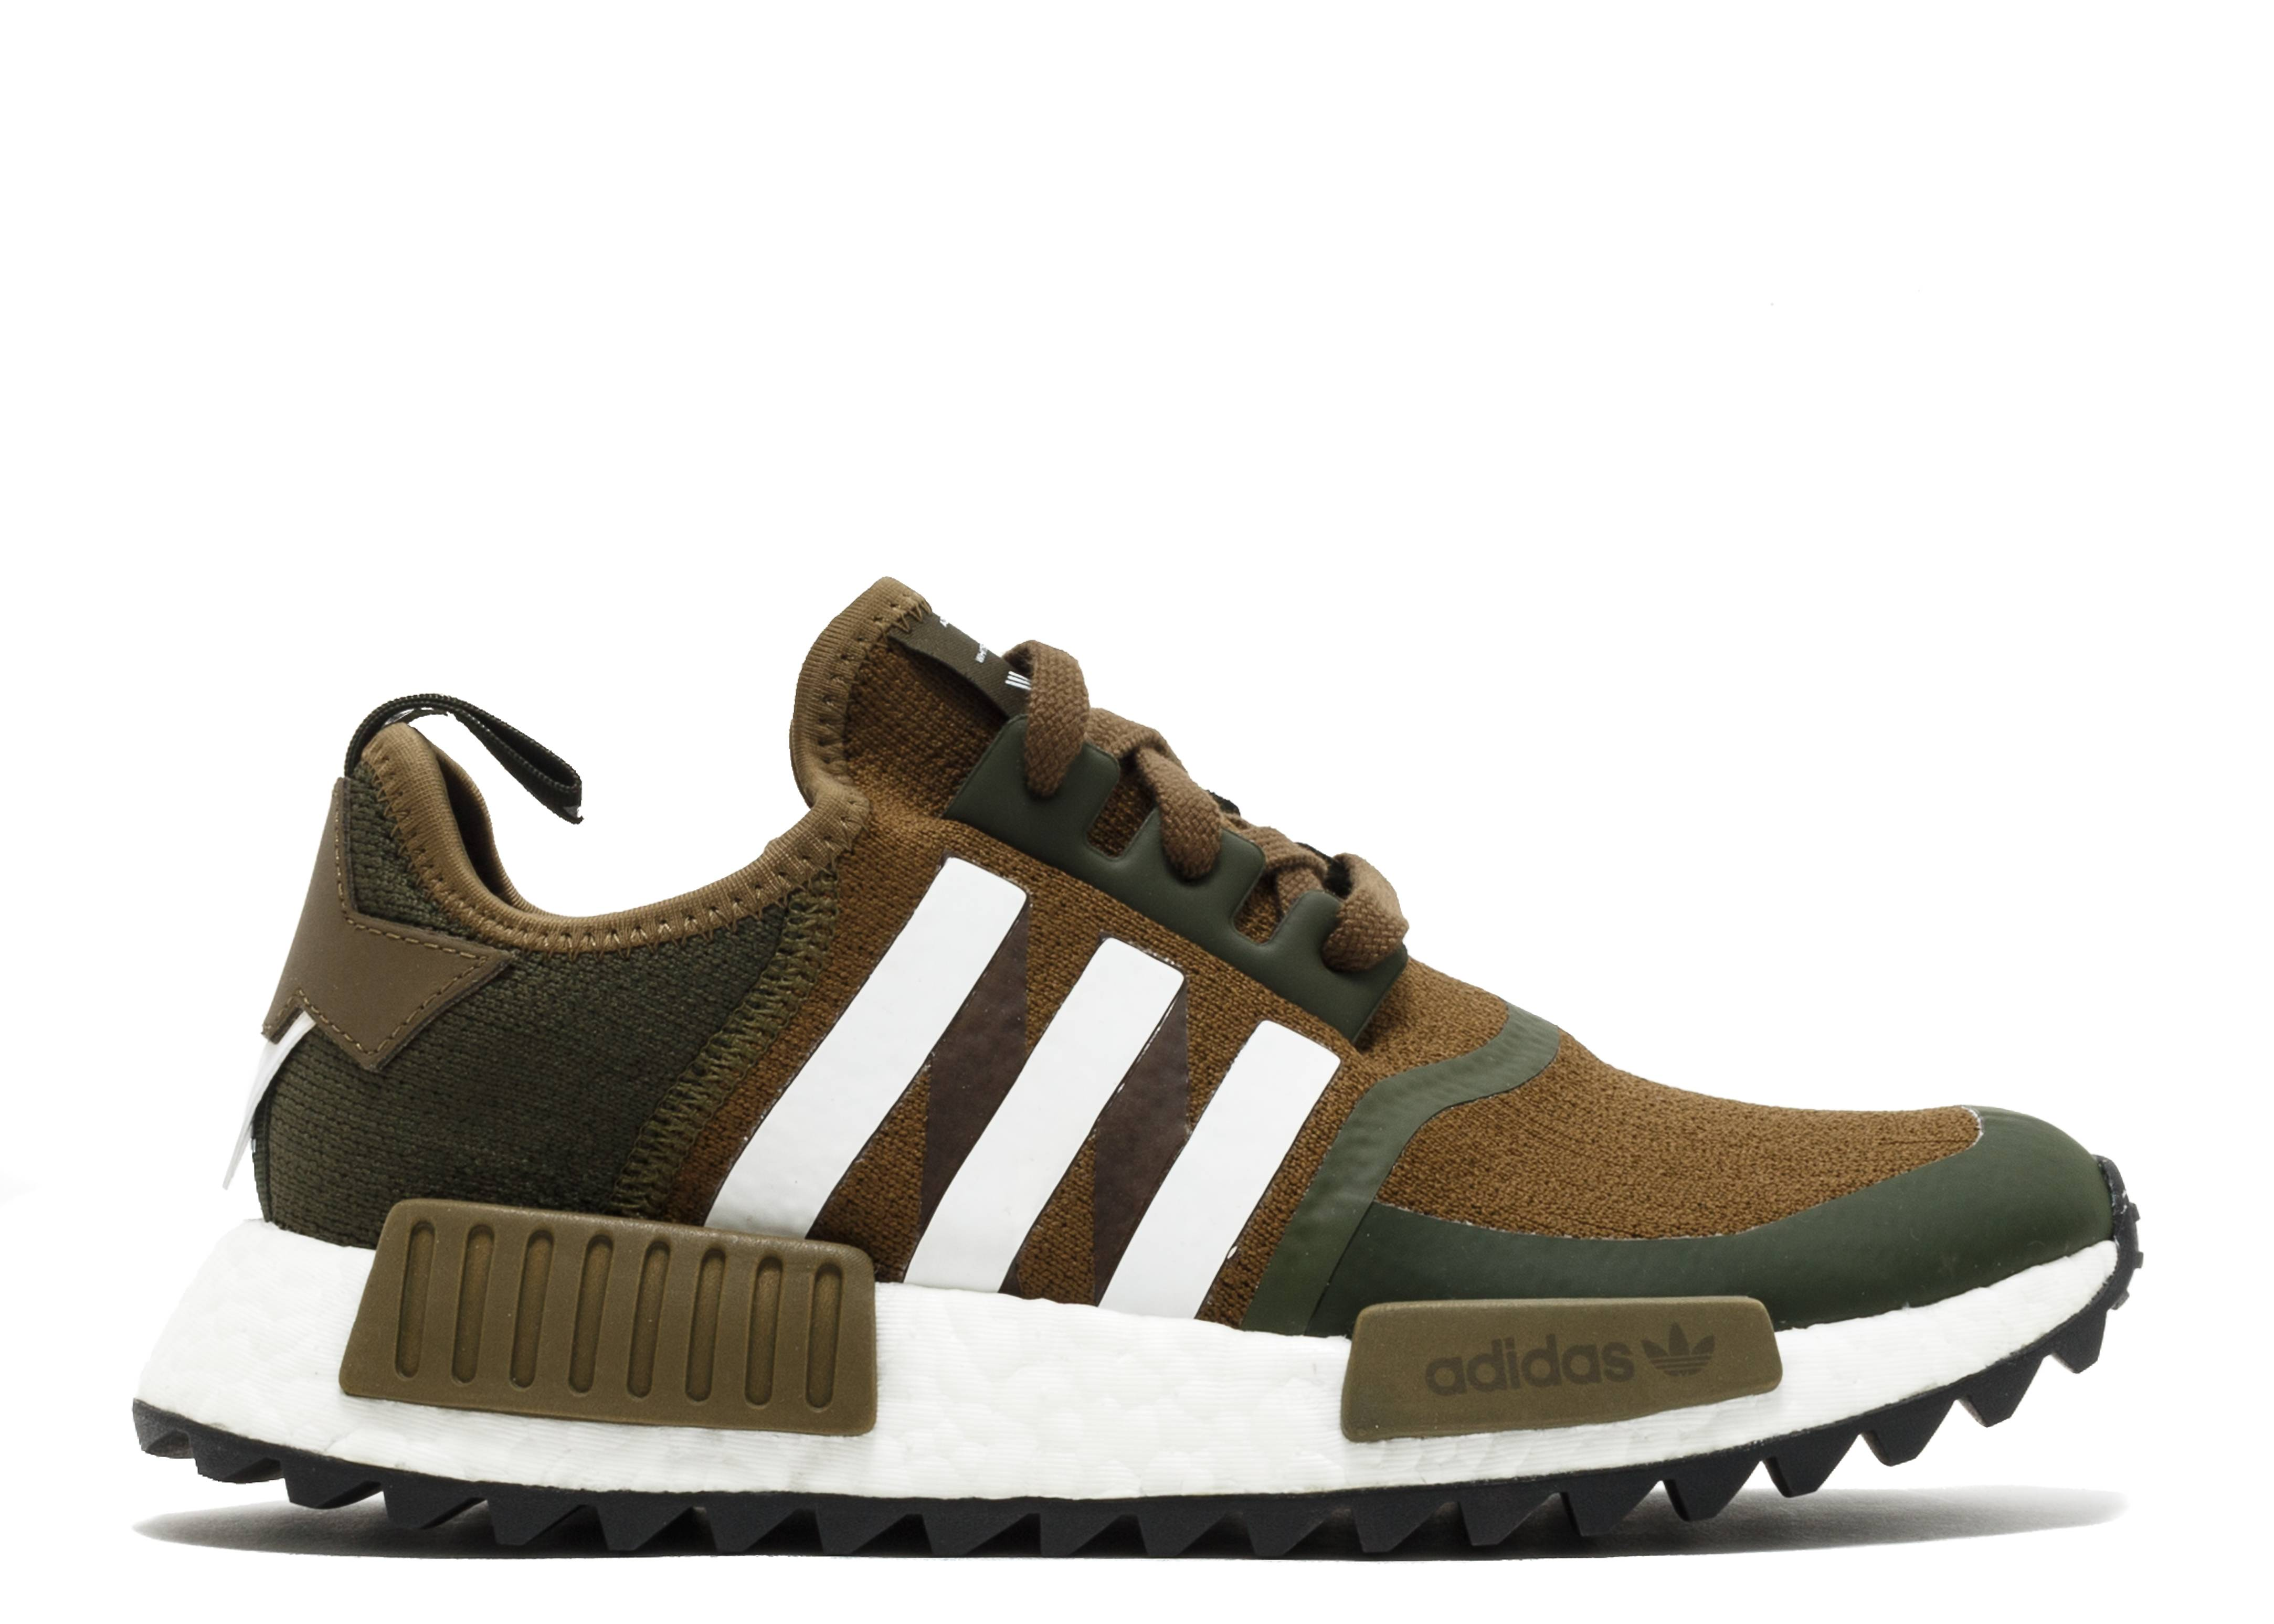 wm nmd trail pk